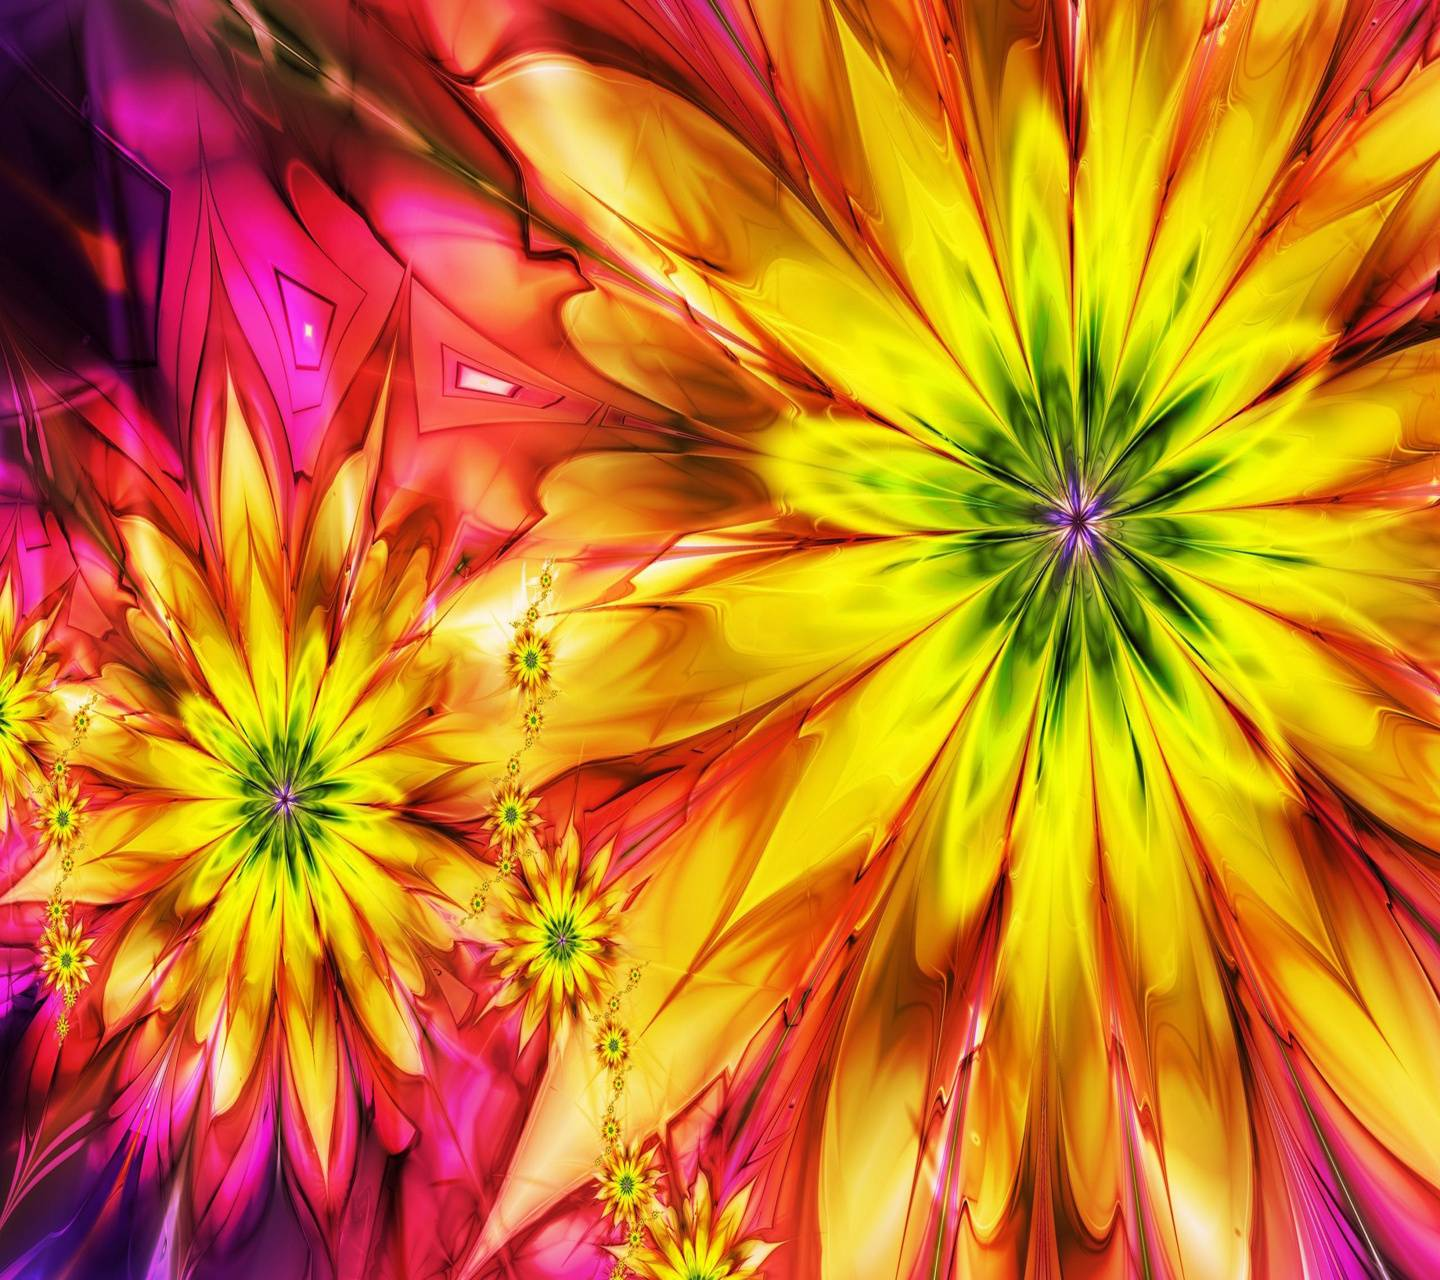 Floral Sunflowers